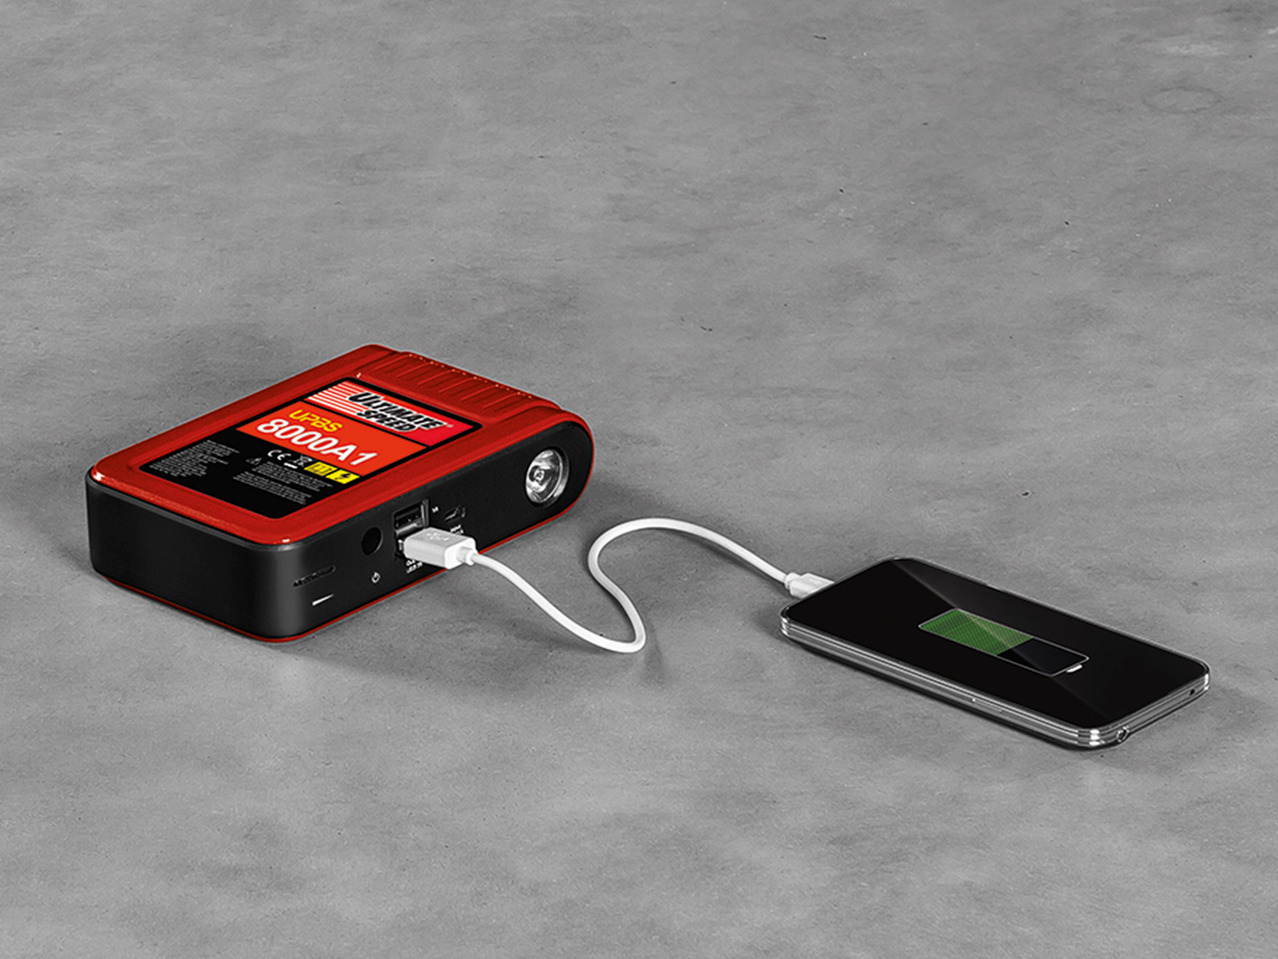 Ultimate speed powerbank with jump start function1 lidl for Ultimate speed caricabatterie lidl